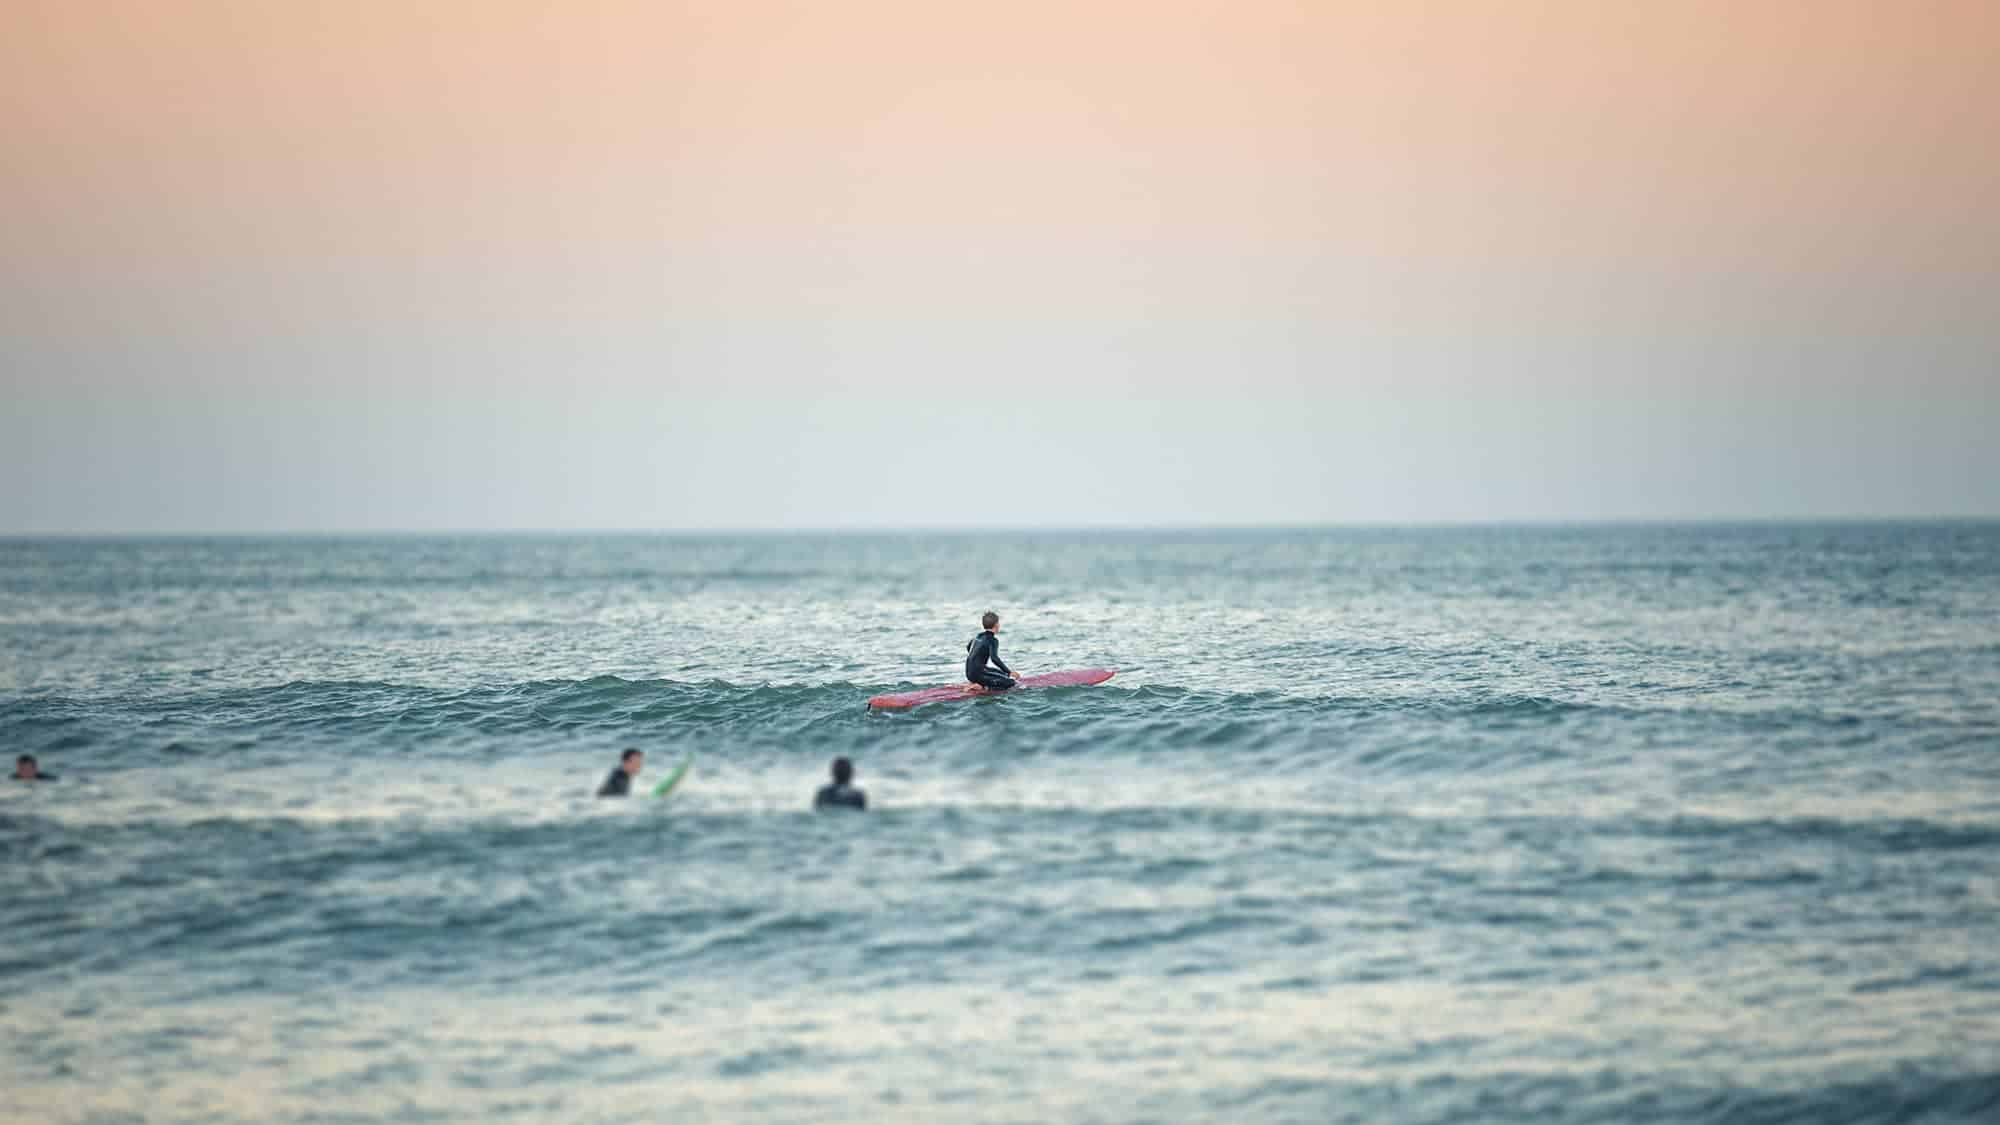 Students surfing in Virginia Beach, the beautiful city that Regent University calls home.